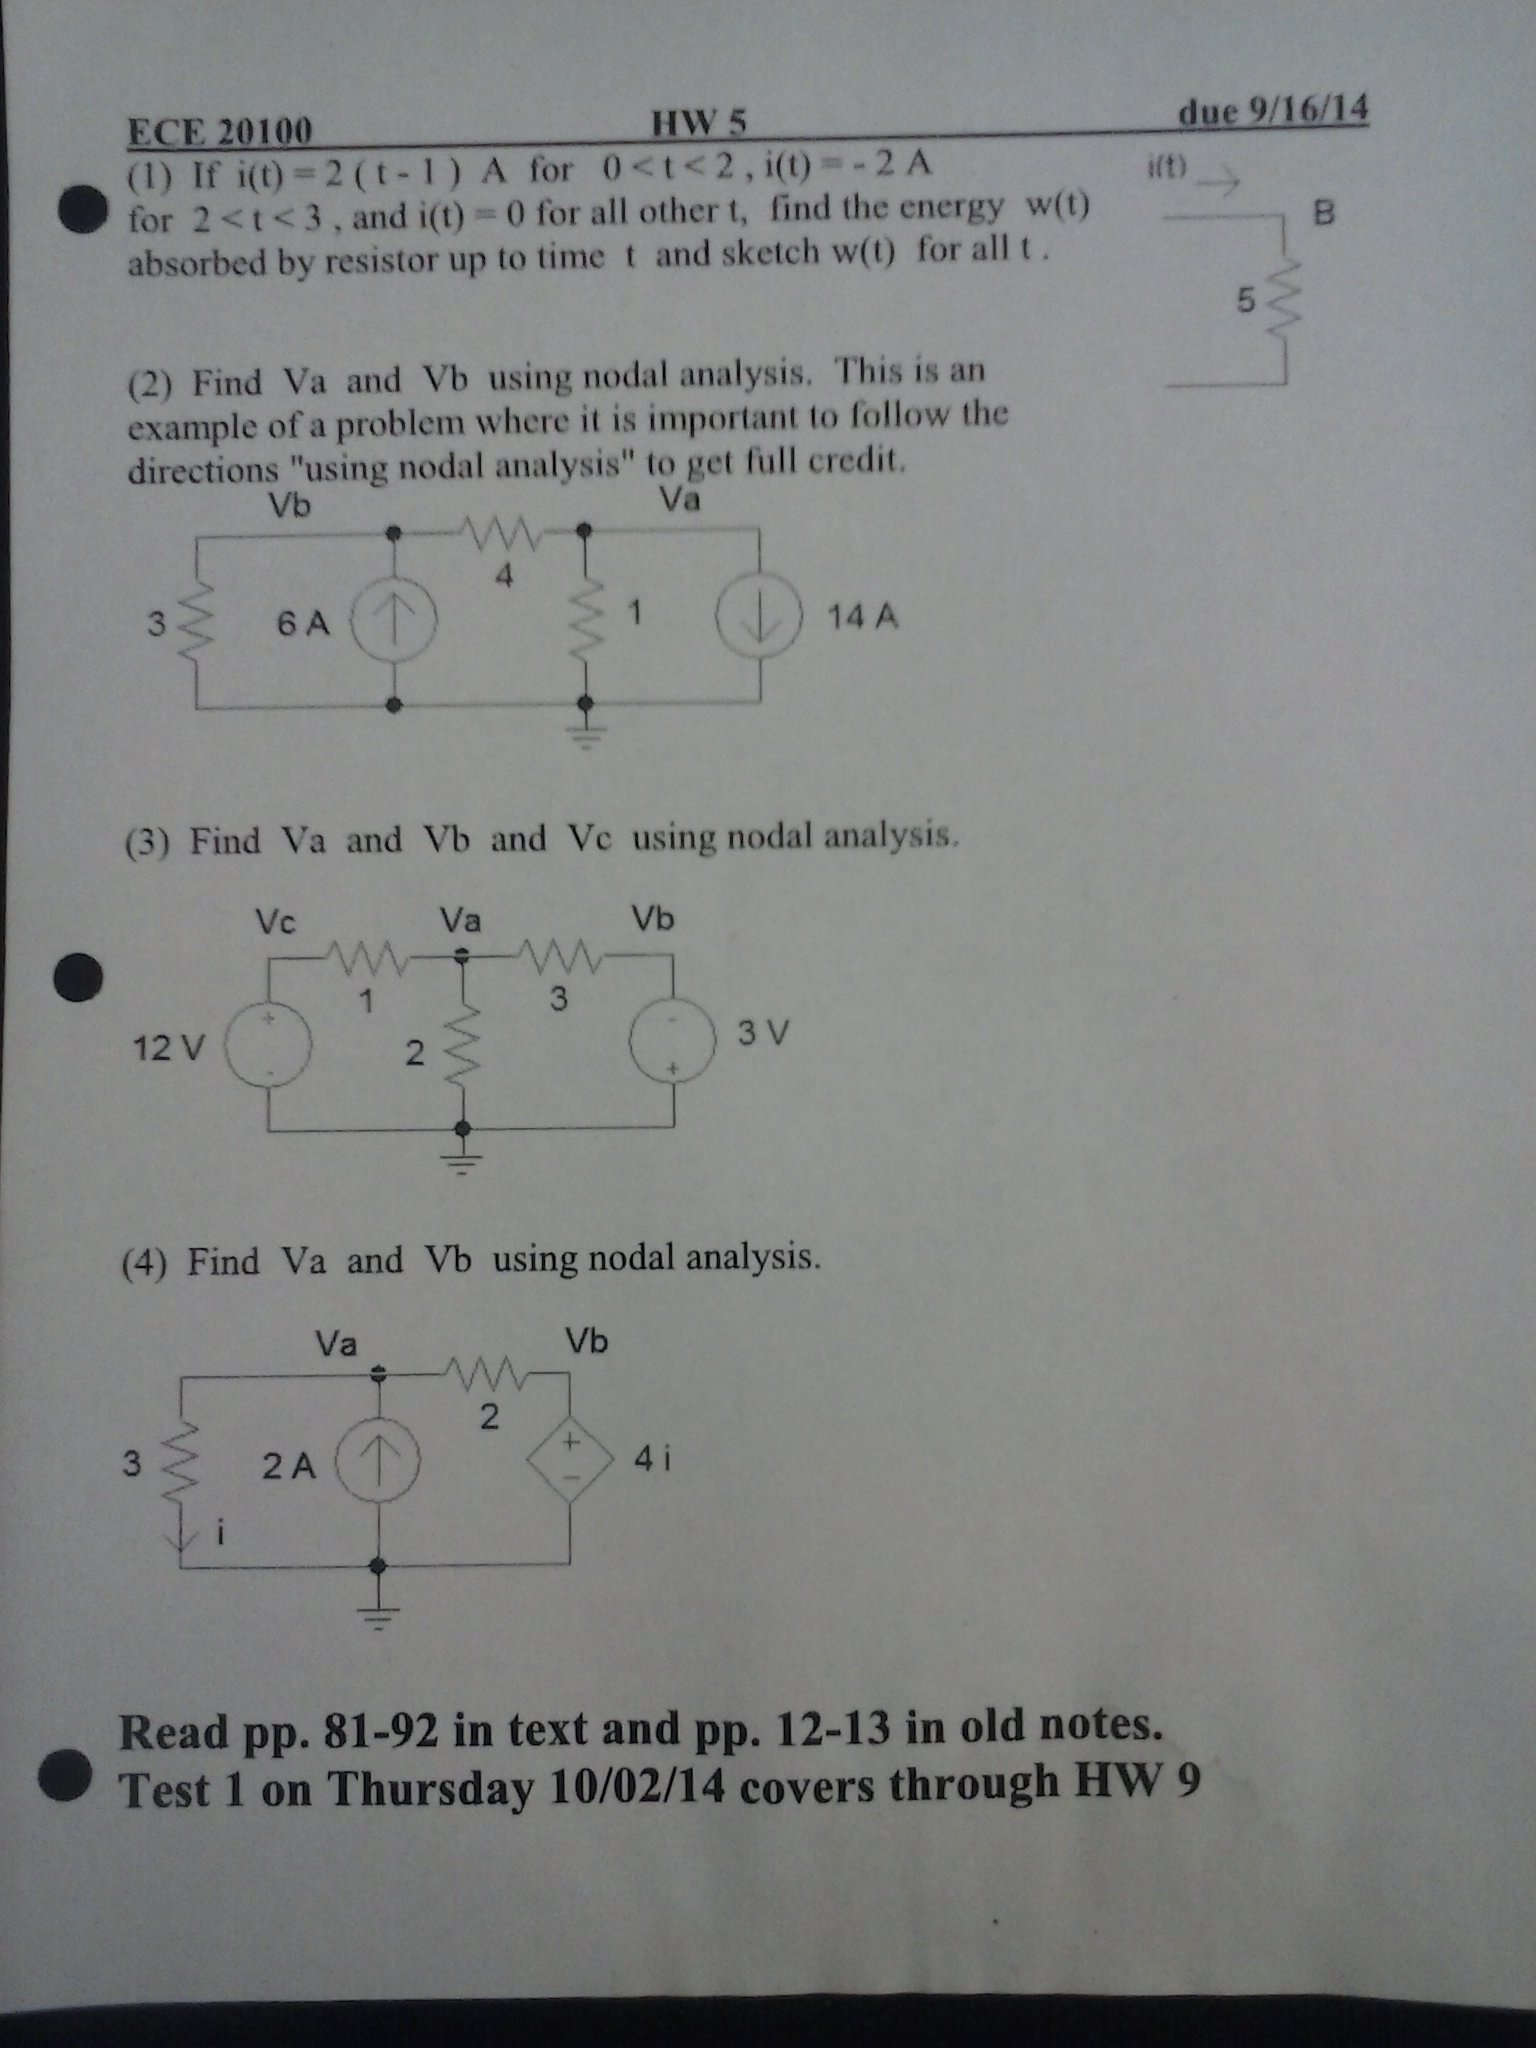 Need help with my homework questions